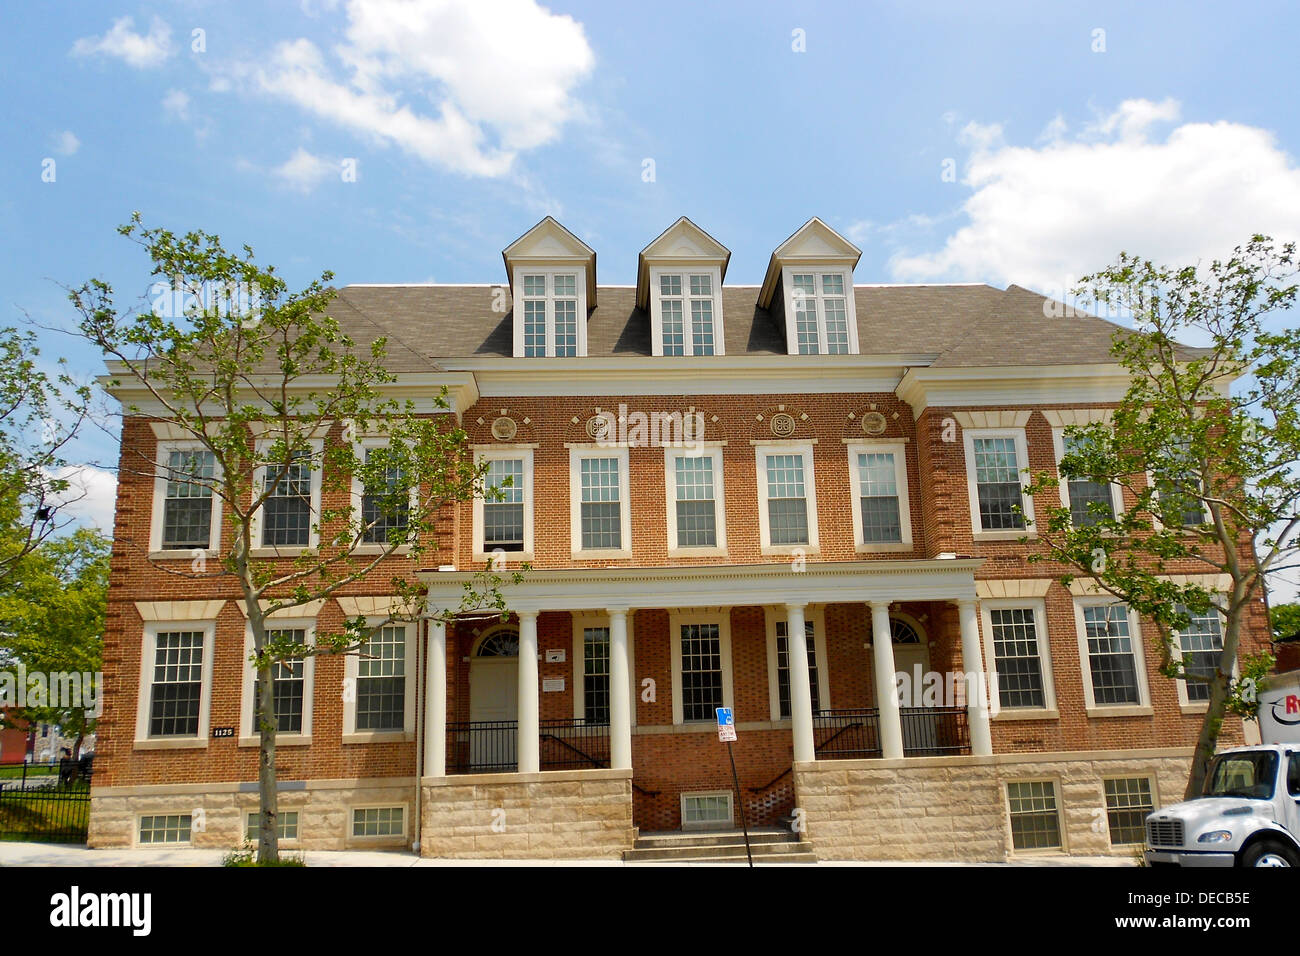 Public School No. 37 on the NRHP since September 25, 1979. At E. Biddle St. and N. Patterson Park Ave., in Baltimore, Maryland - Stock Image